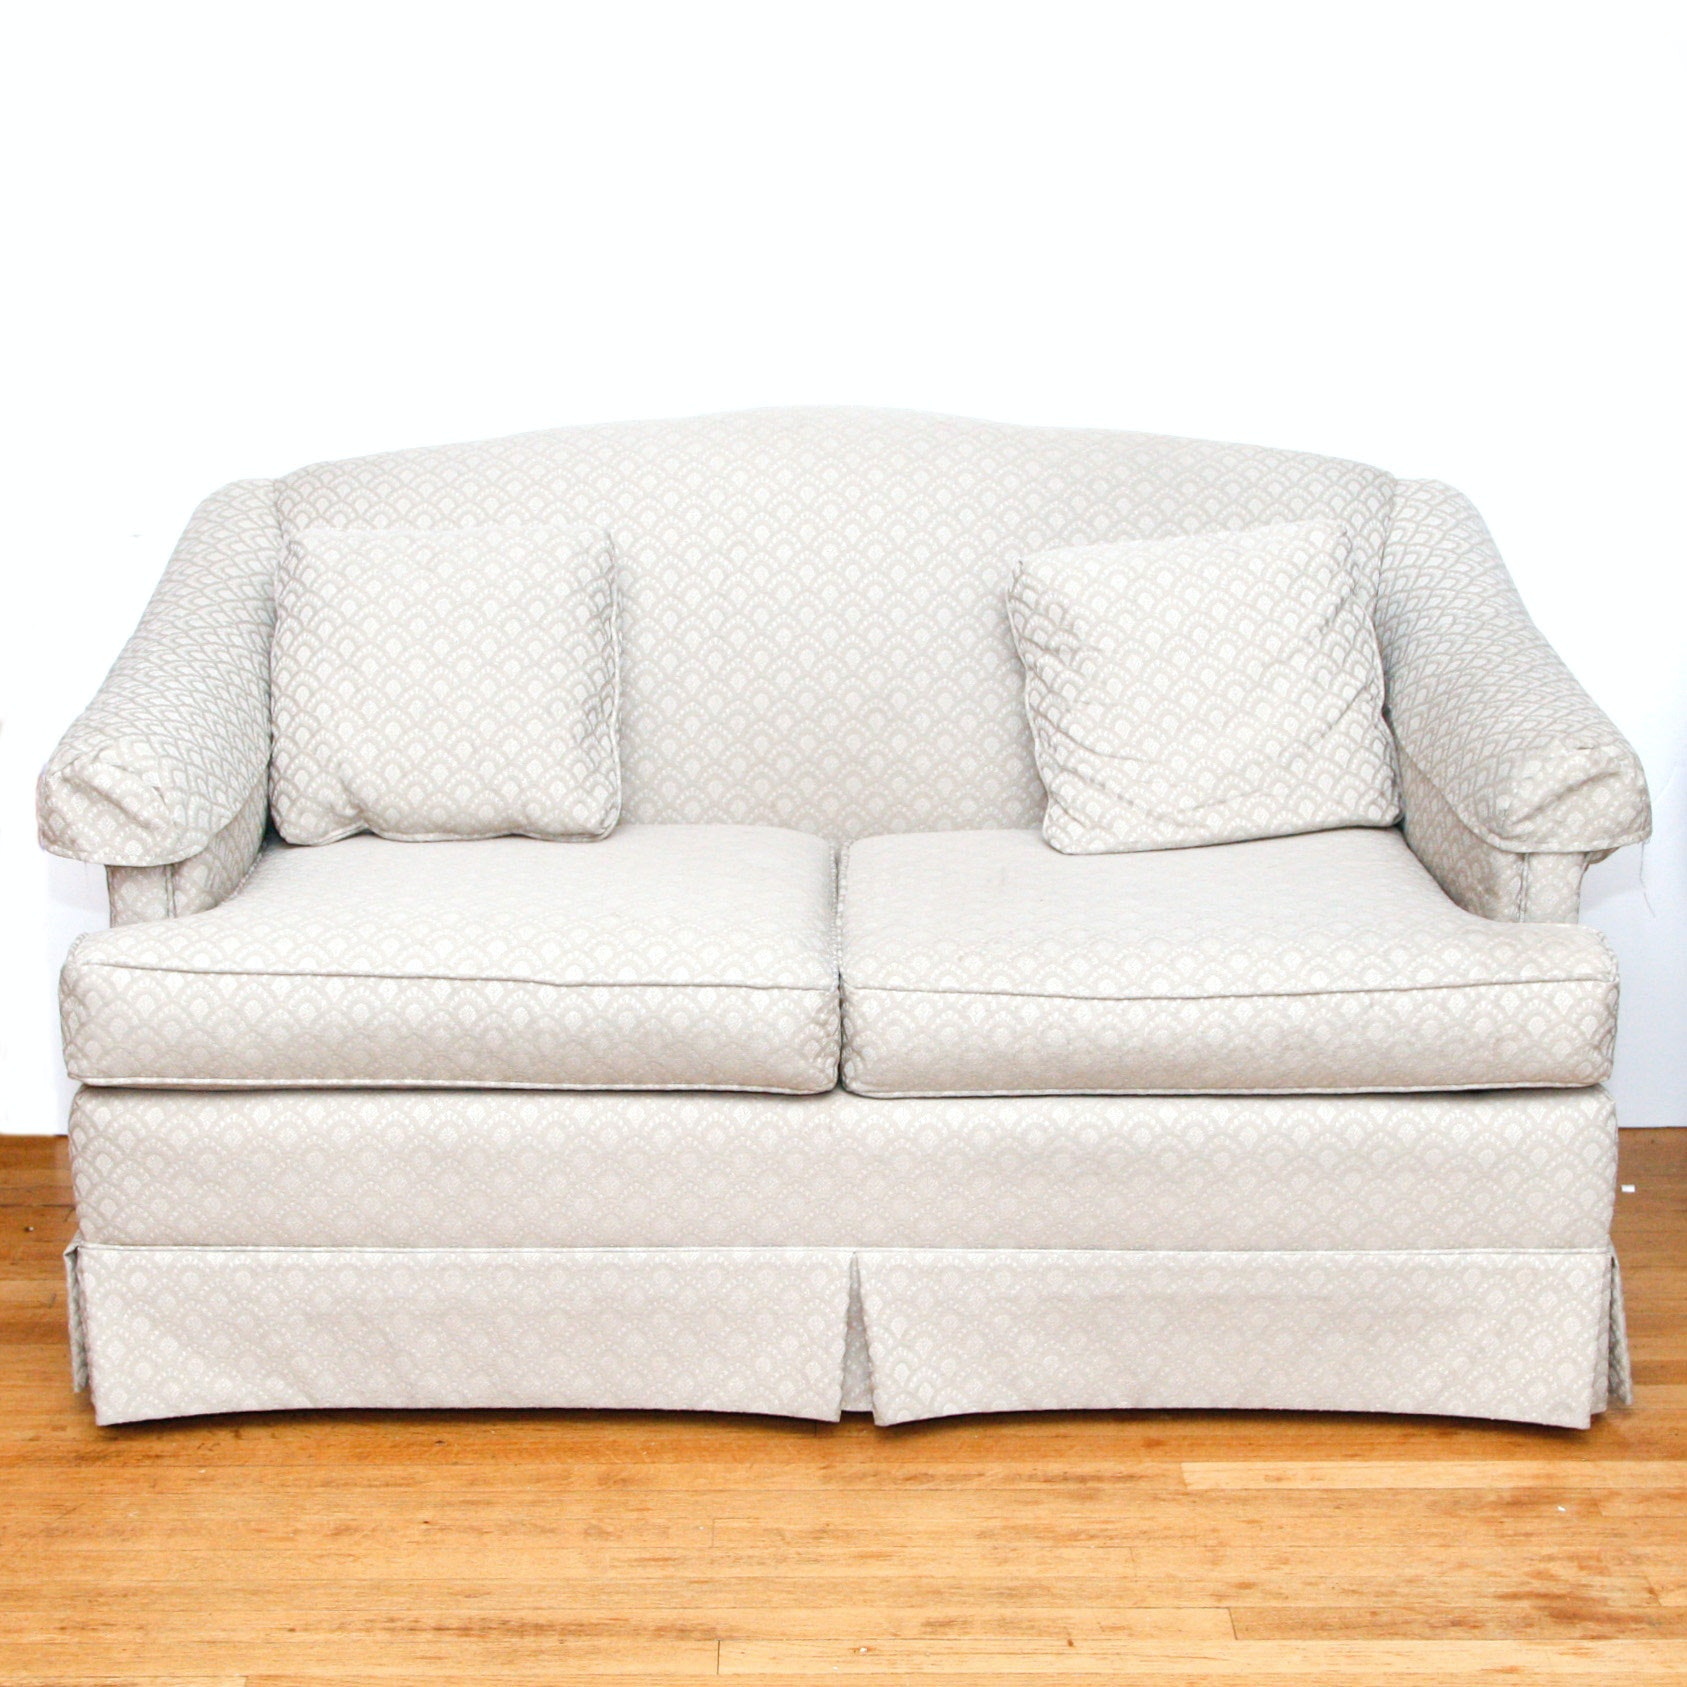 Rowe Furniture Upholstered Love Seat